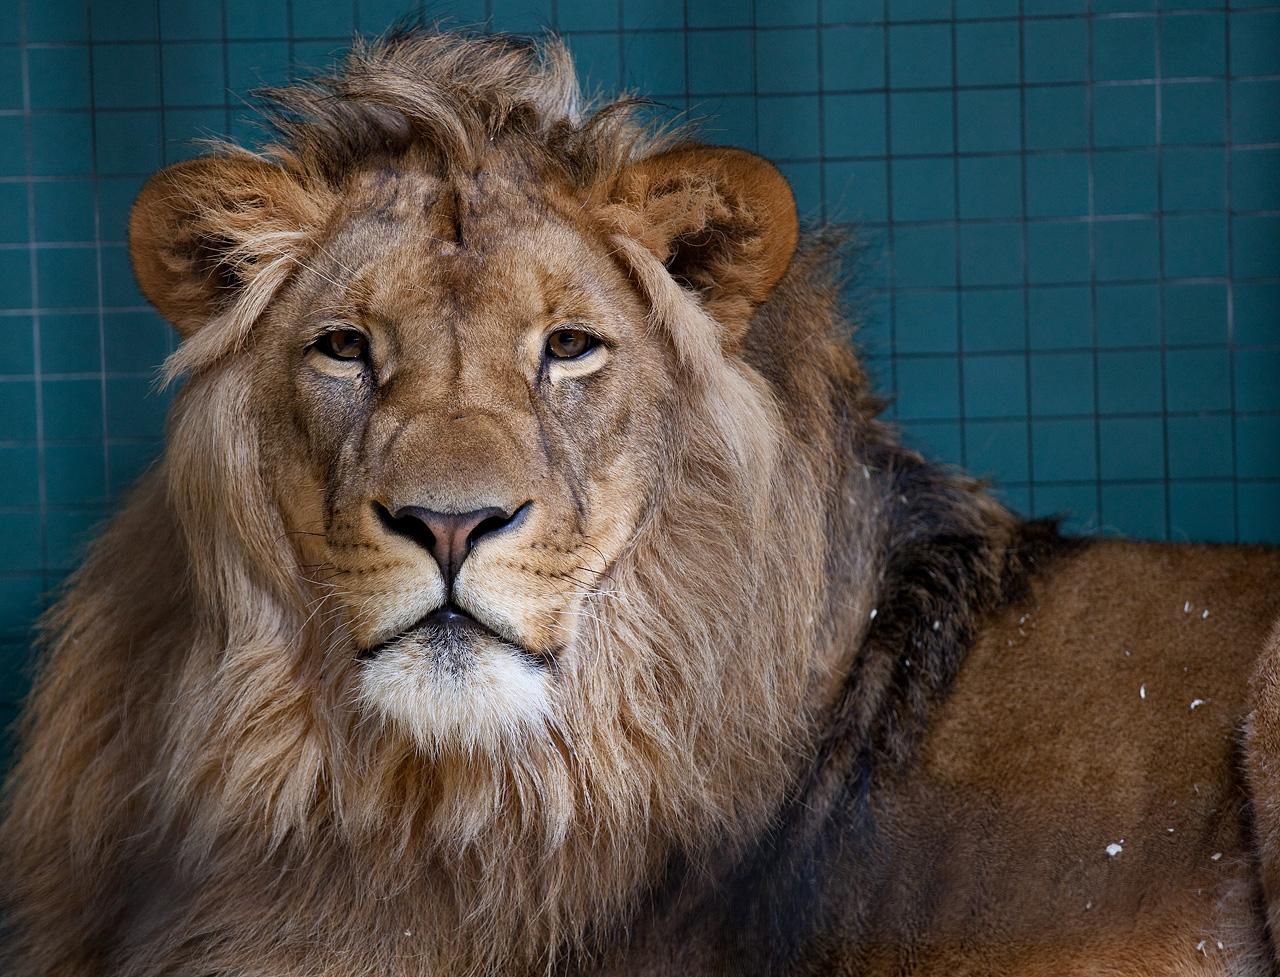 Lion male løve the lion panthera leo is one of the four big cats in